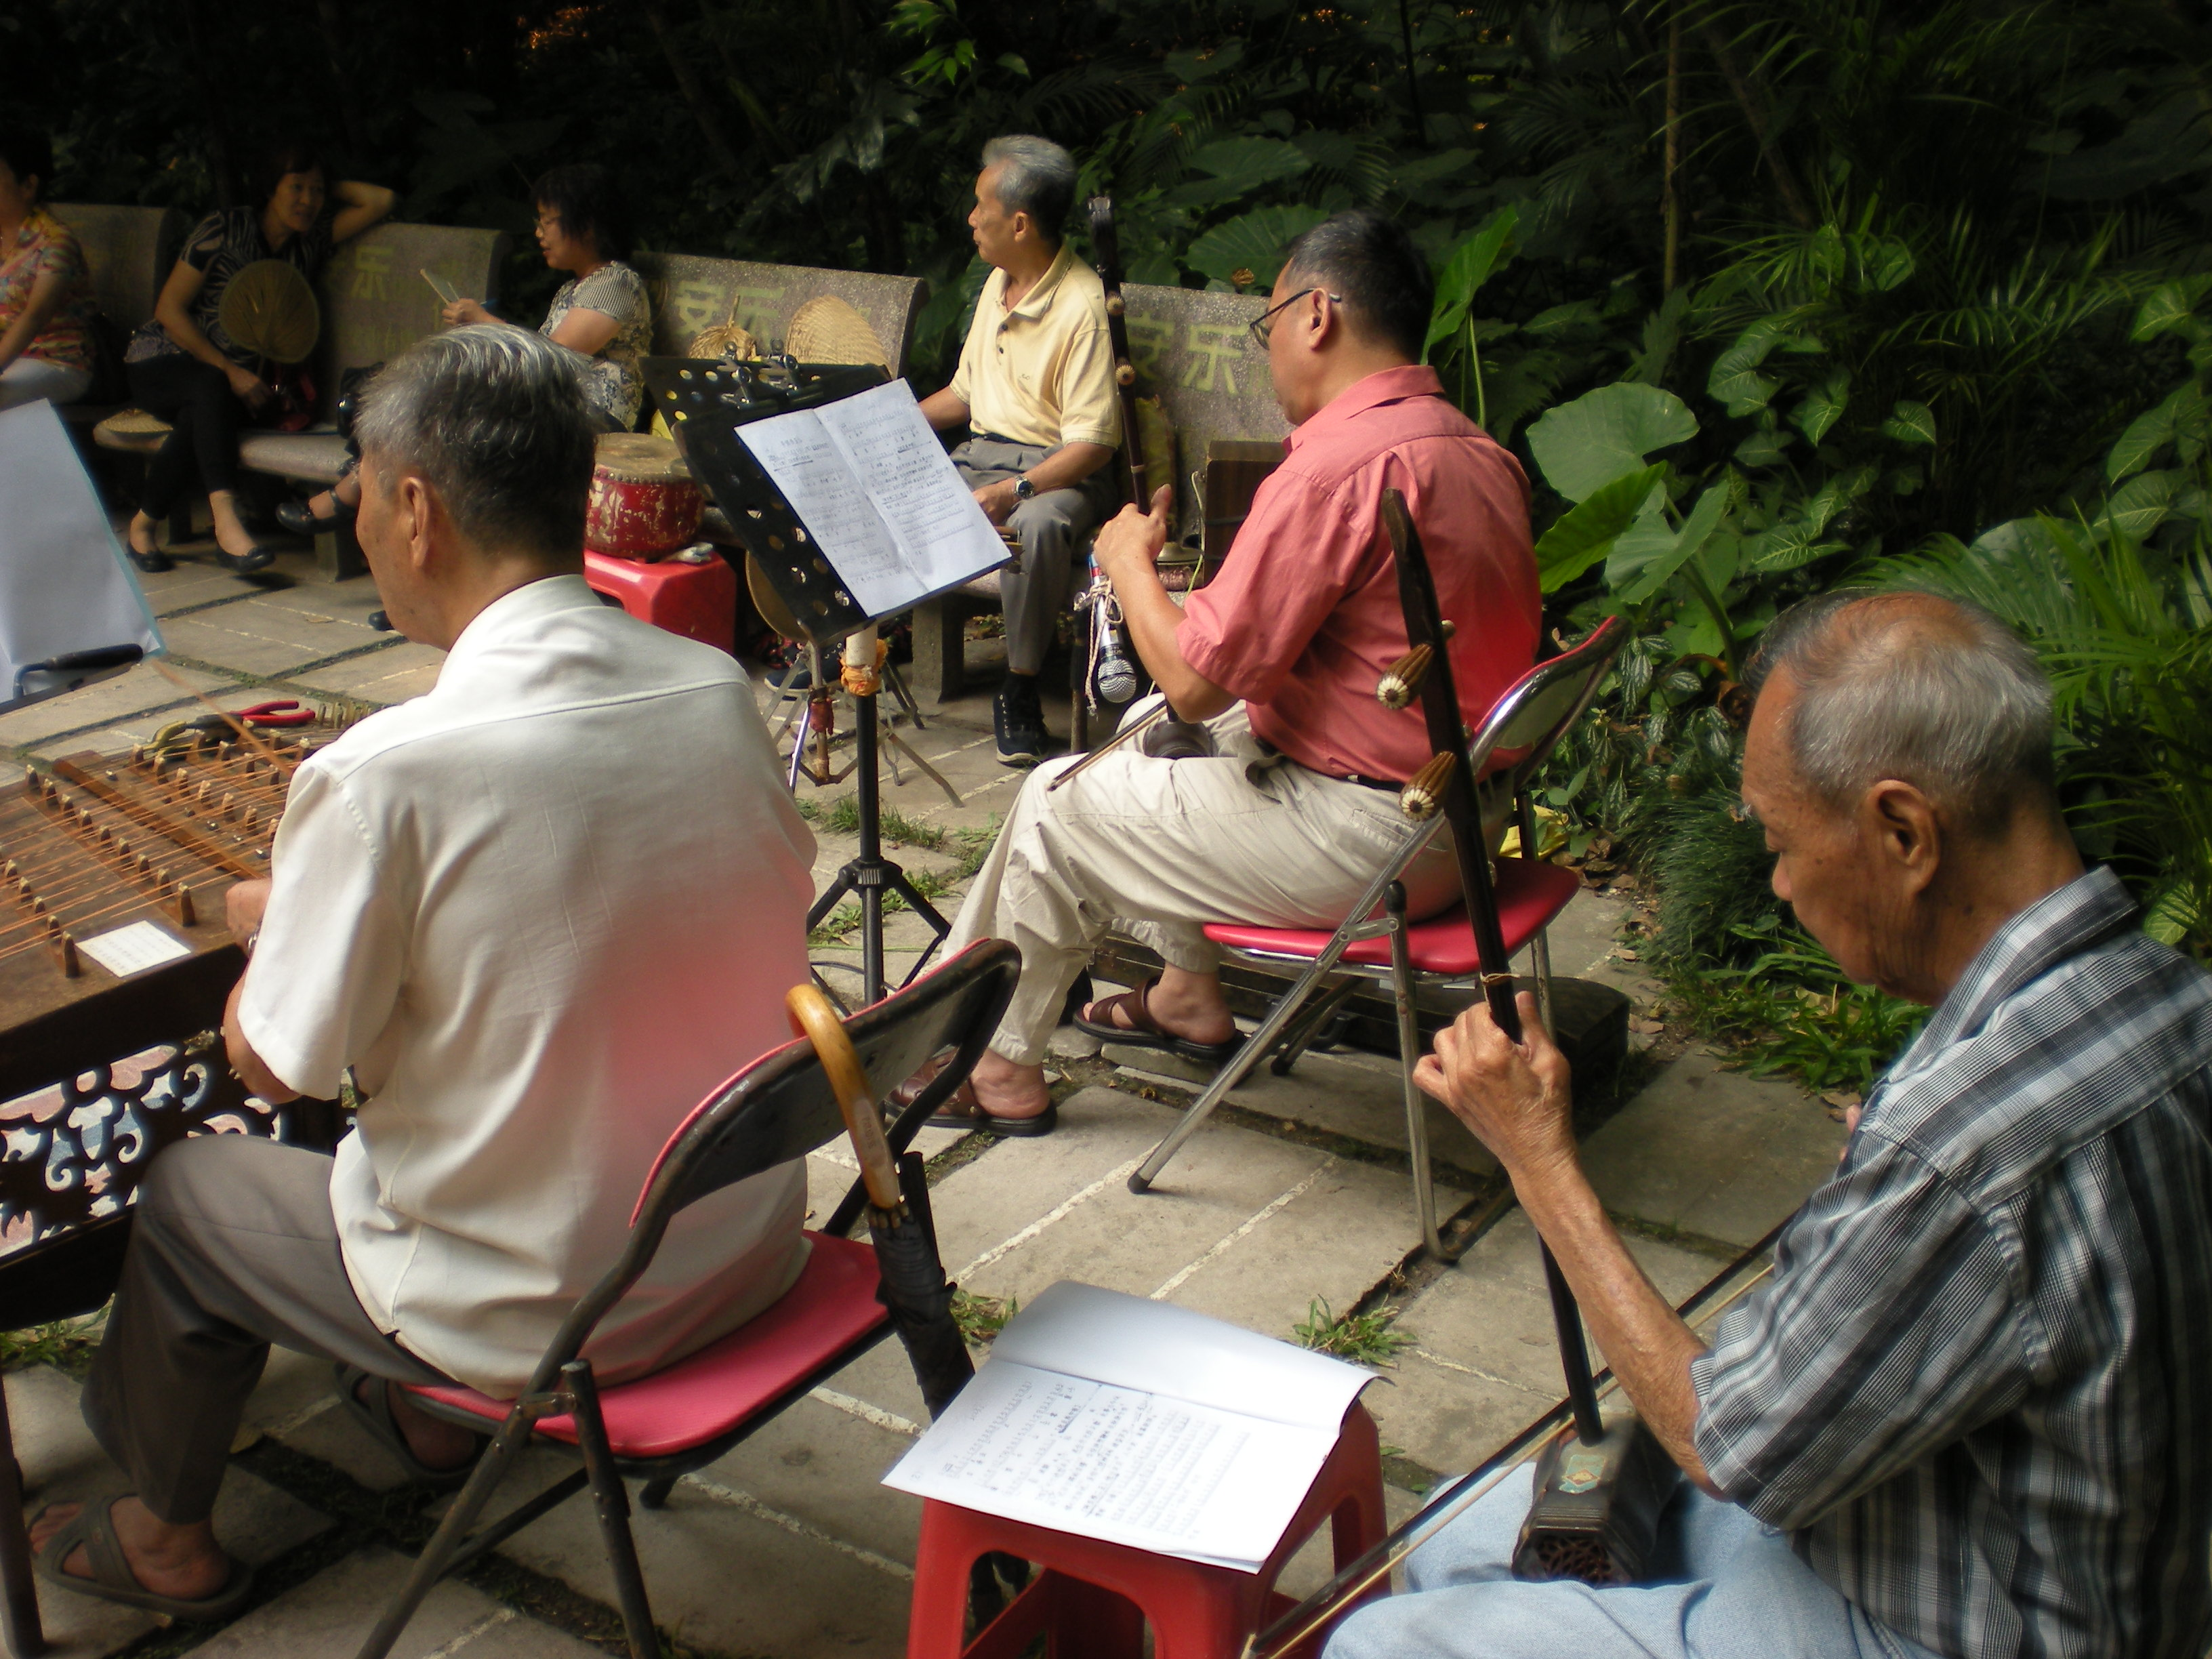 A small group of musicians playing together in a park in Guanzhou, China.